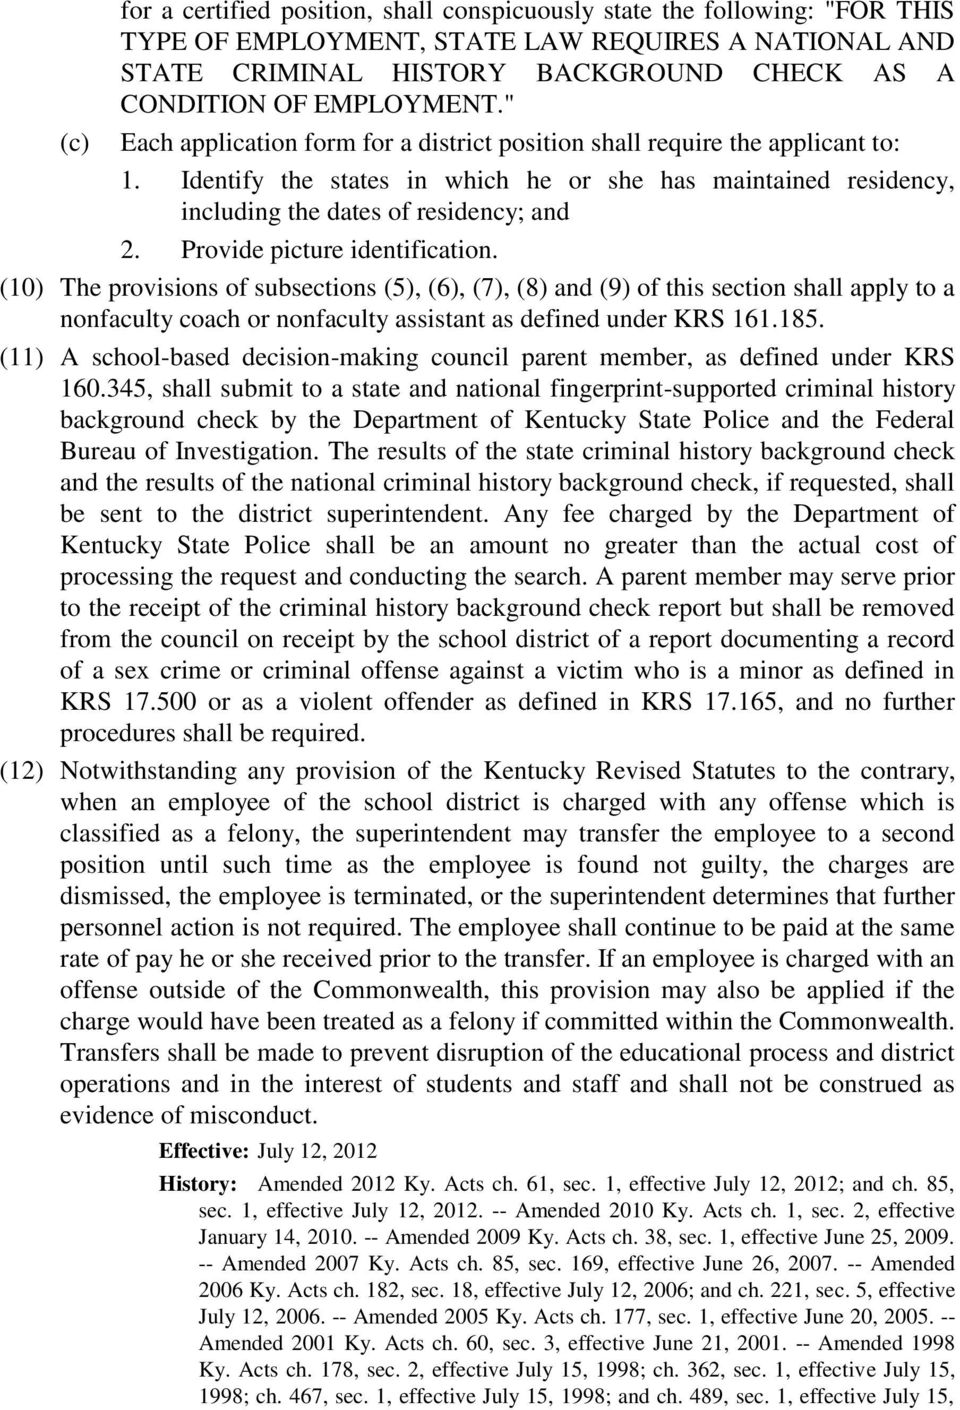 Provide picture identification. (10) The provisions of subsections (5), (6), (7), (8) and (9) of this section shall apply to a nonfaculty coach or nonfaculty assistant as defined under KRS 161.185.